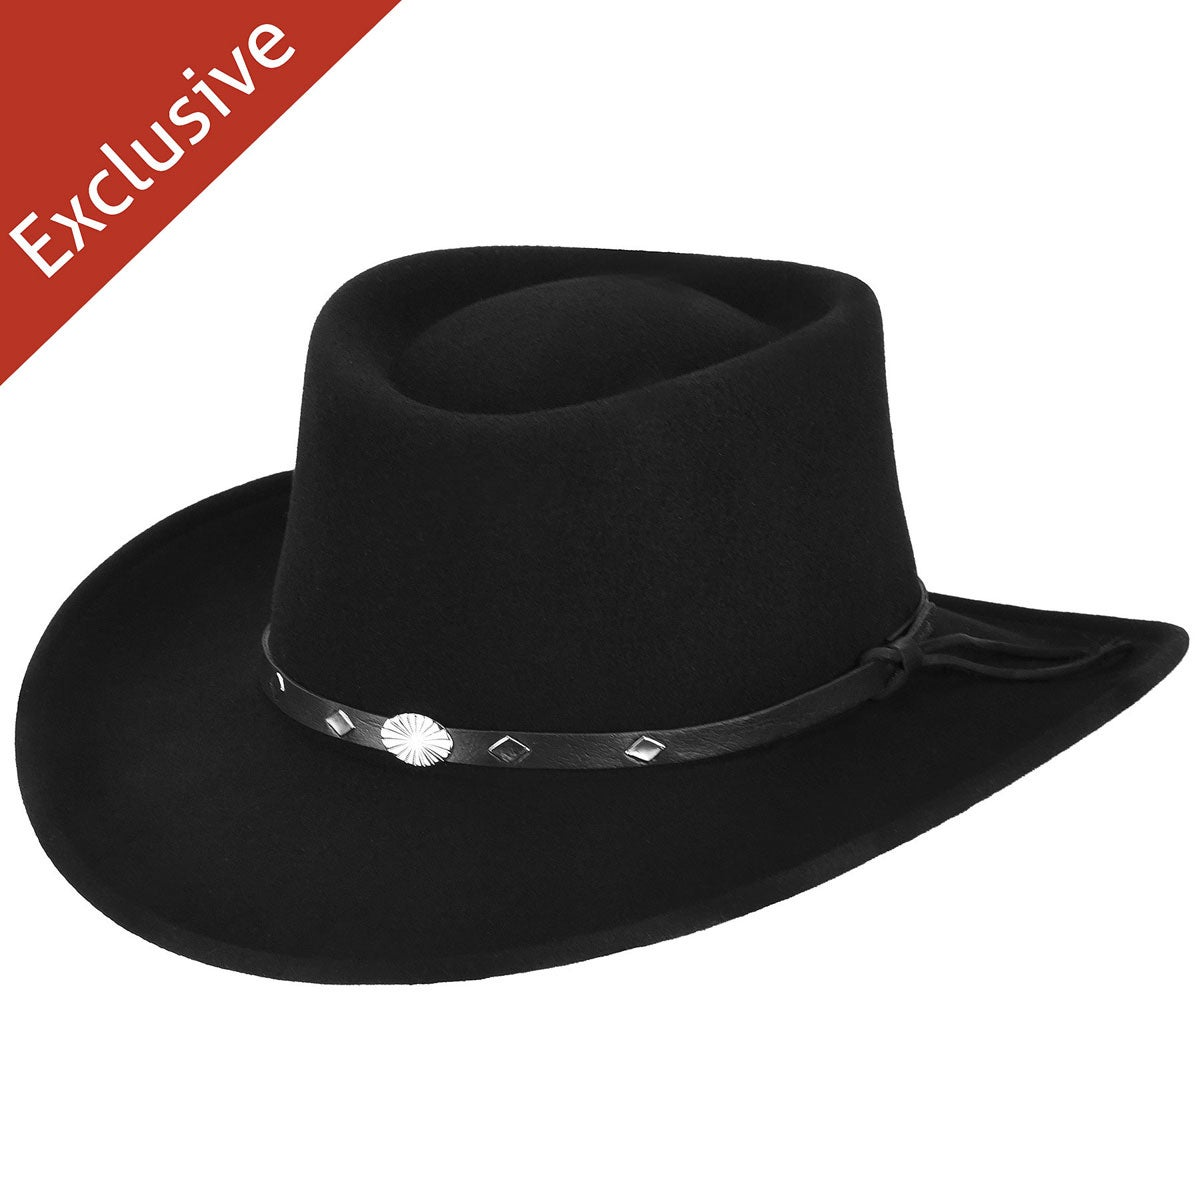 Victorian Men's Clothing, Fashion – 1840 to 1900 Ace of Spades Gambler Hat - Exclusive $39.99 AT vintagedancer.com